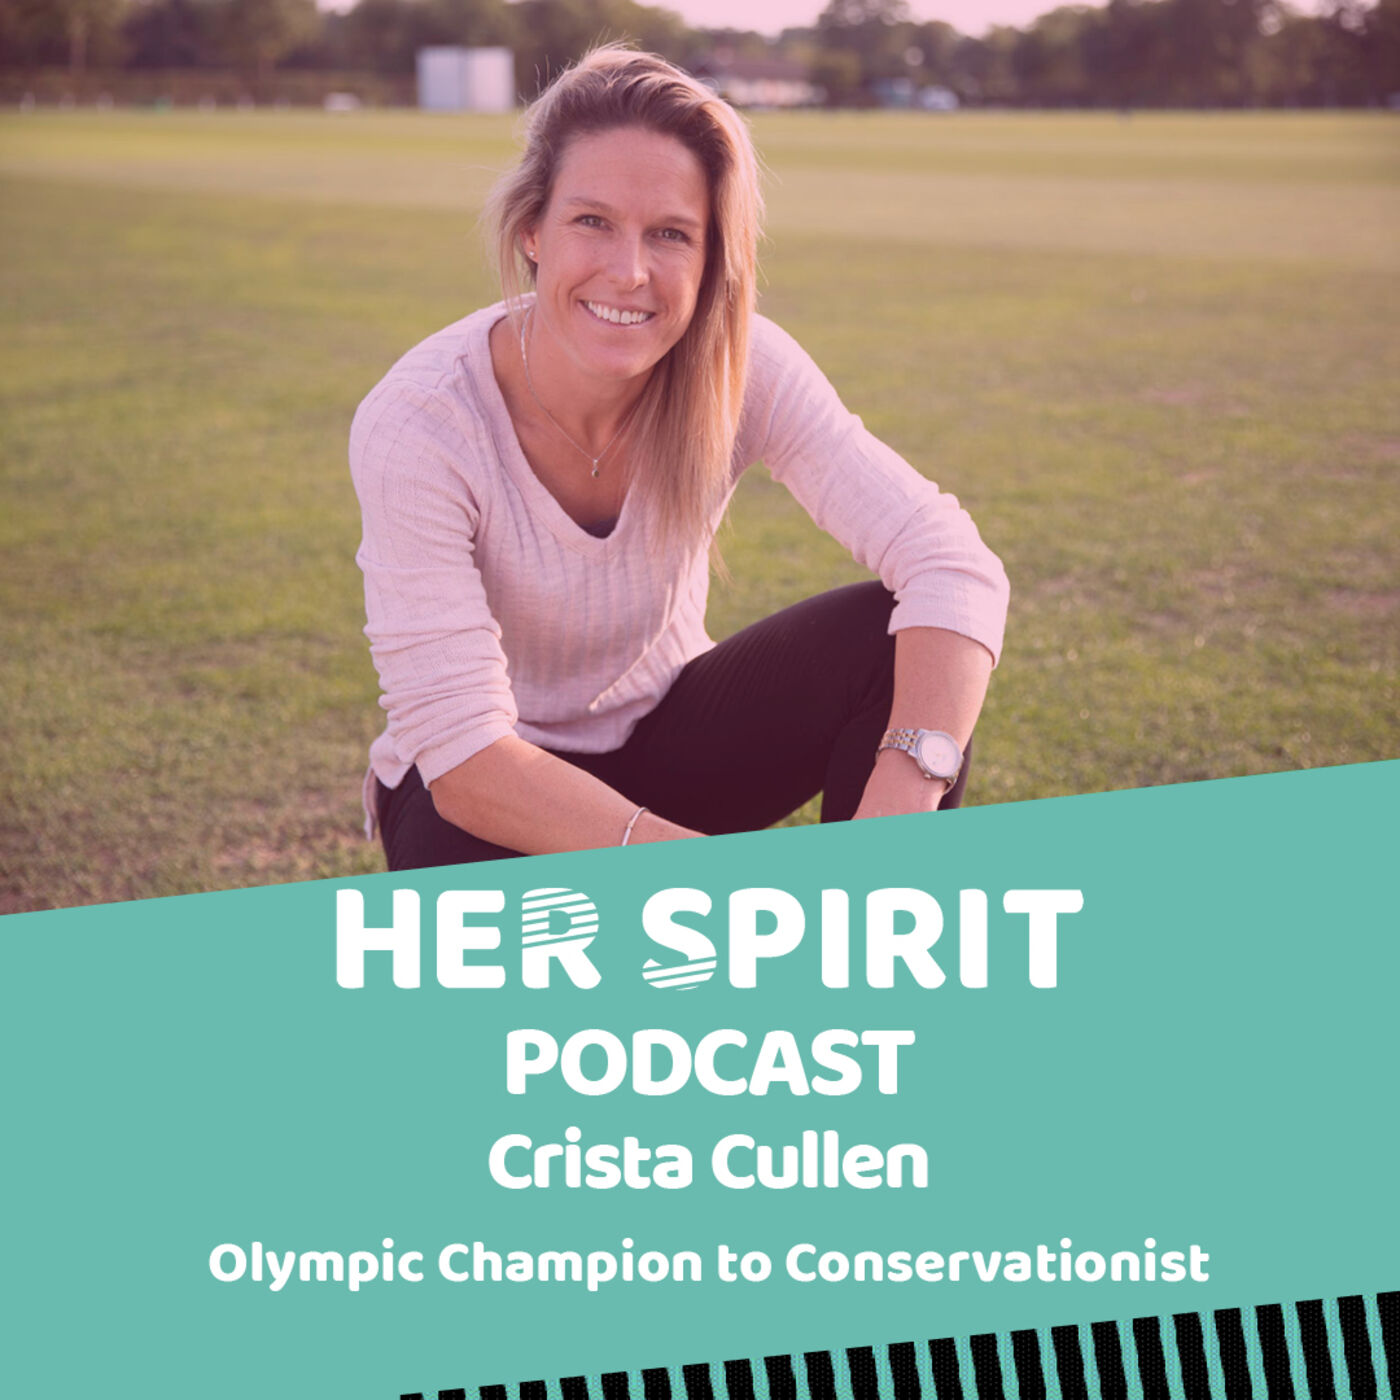 Olympic gold medalist and conservationist Crista Cullen talks to Annie and Louise about life growing up in the UK, her hockey journey and winning gold in Rio and her love of Africa